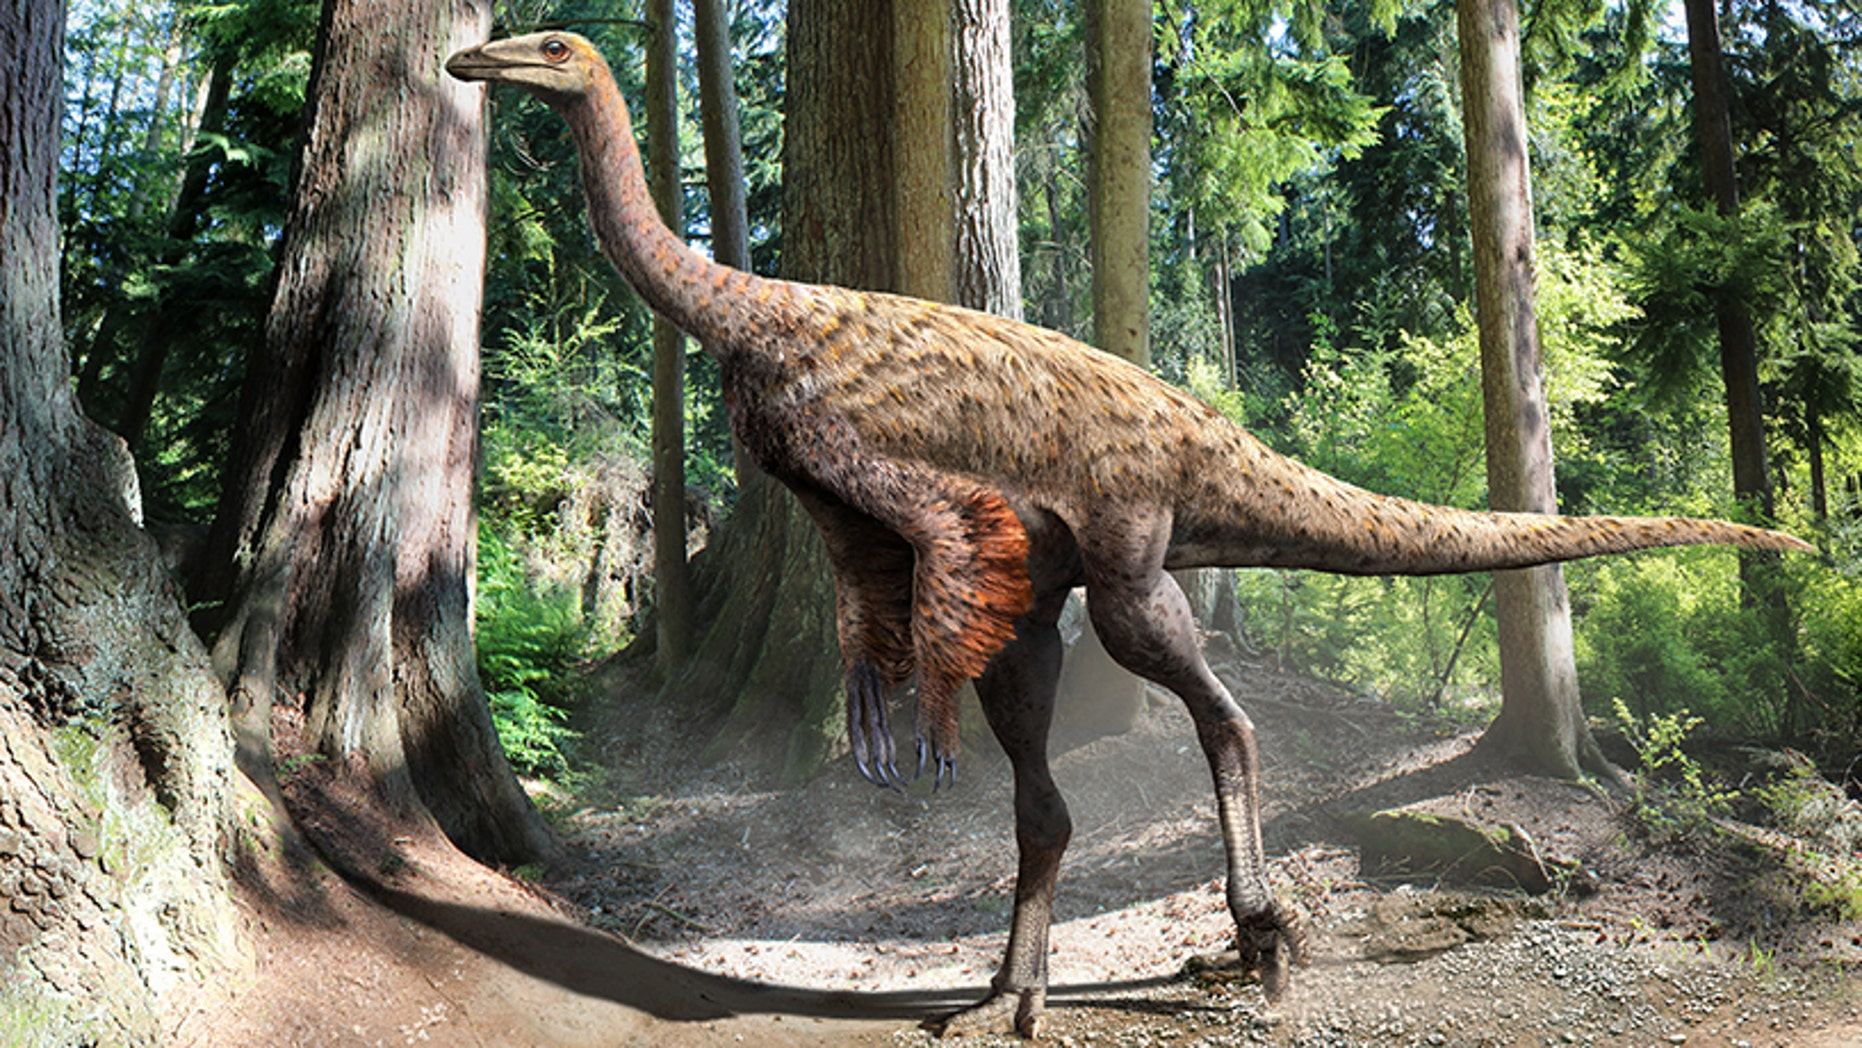 Illustration of Ornithomimus, by Julius Csotonyi, based on the findings of preserved tail feathers and soft tissue.